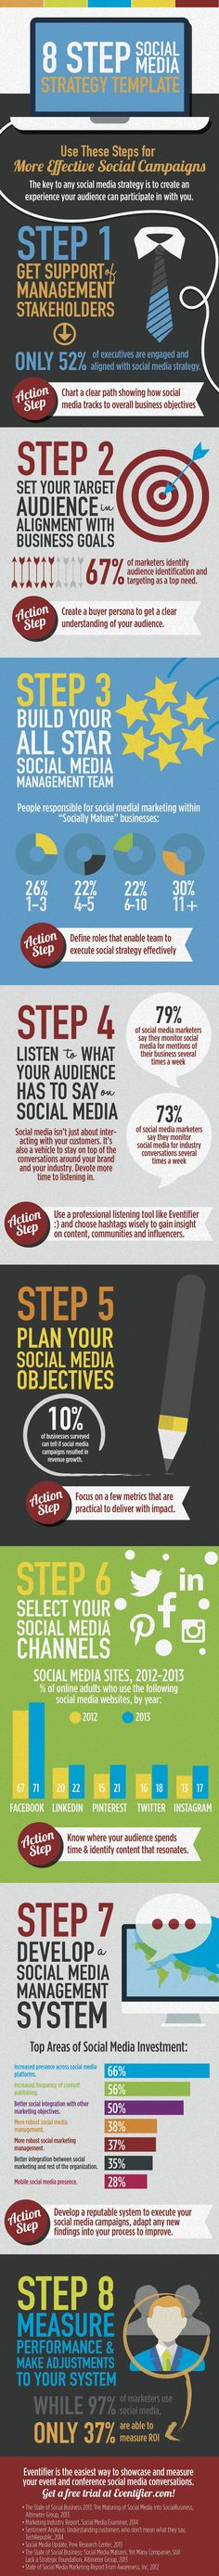 8 Step #SocialMedia Strategy Template: Use These Steps for More Effective Social Campaigns - #Infographic #marketing